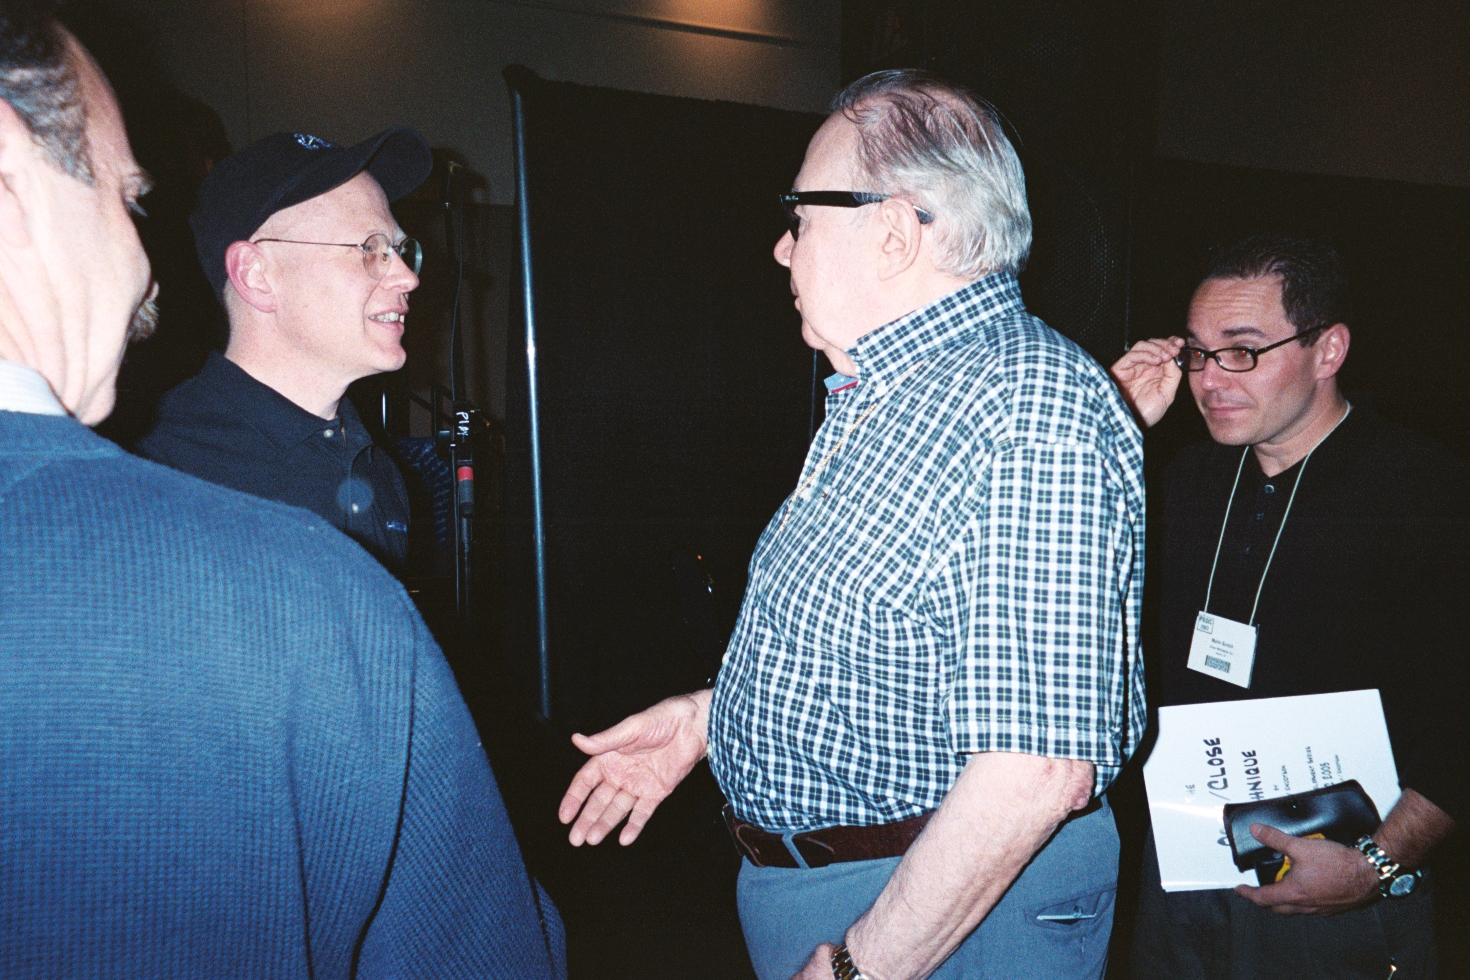 Gordy Knudtson — PASIC 2003